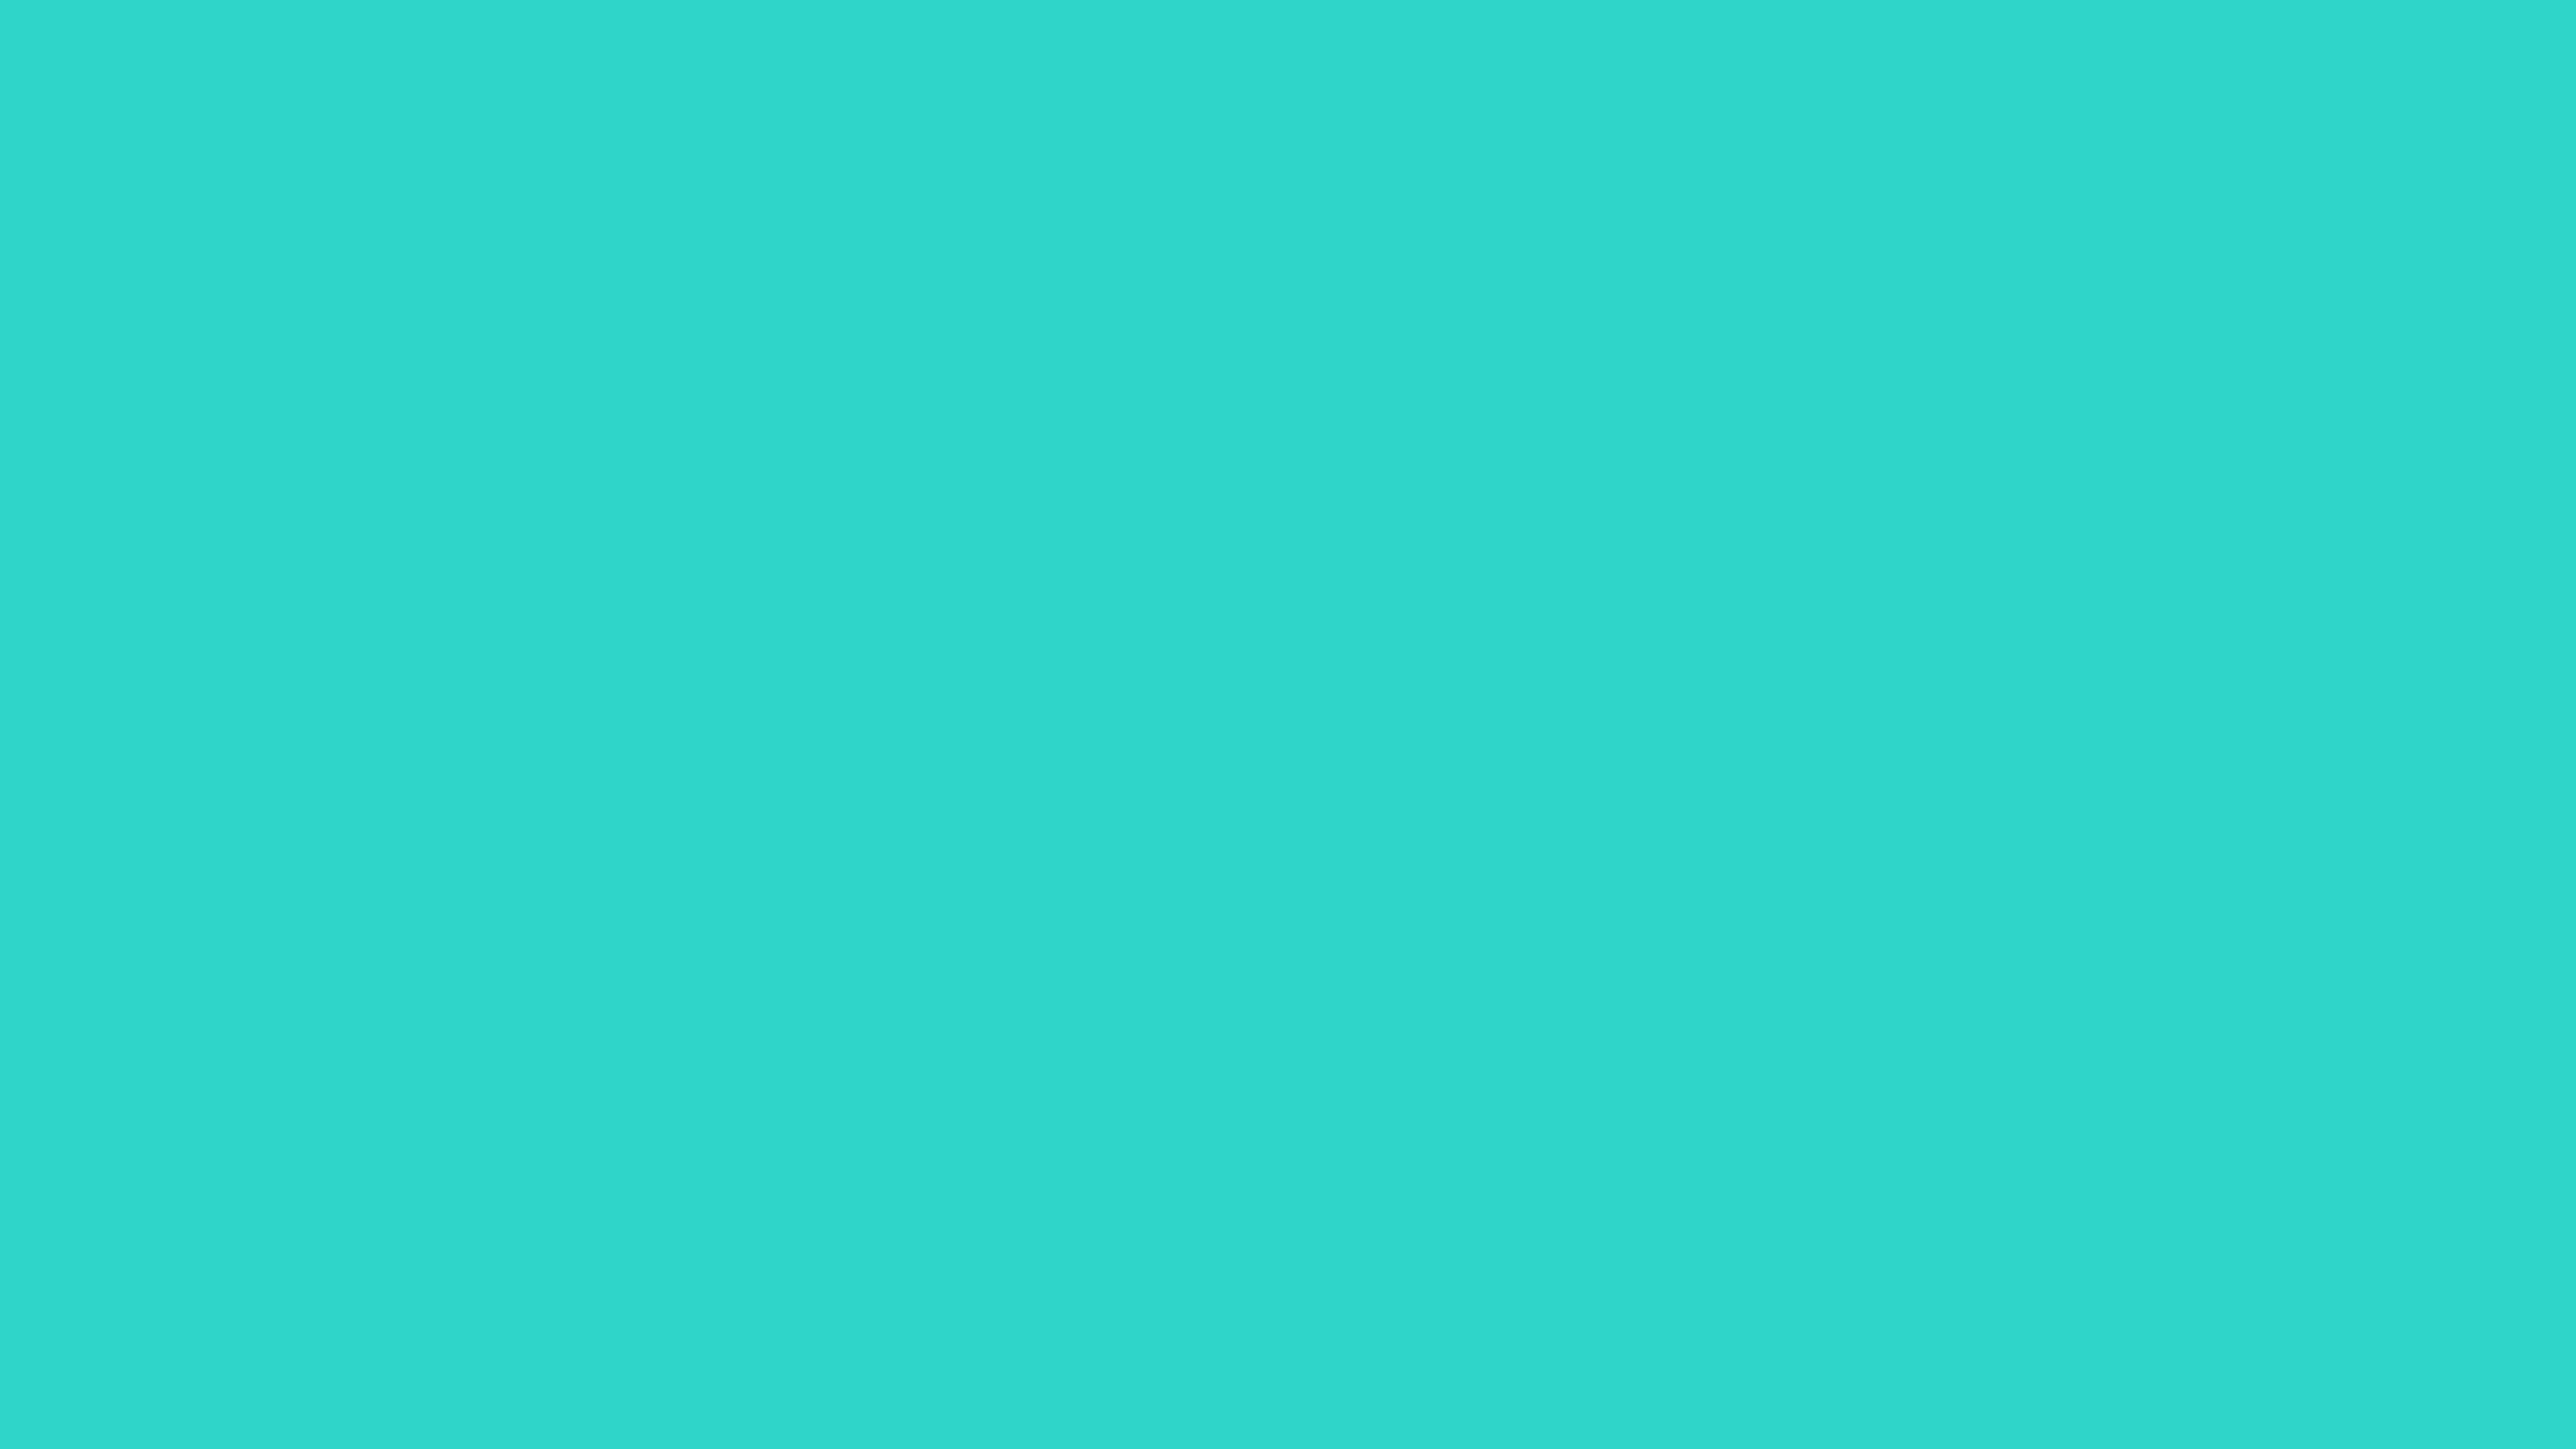 3840x2160 Turquoise Solid Color Background